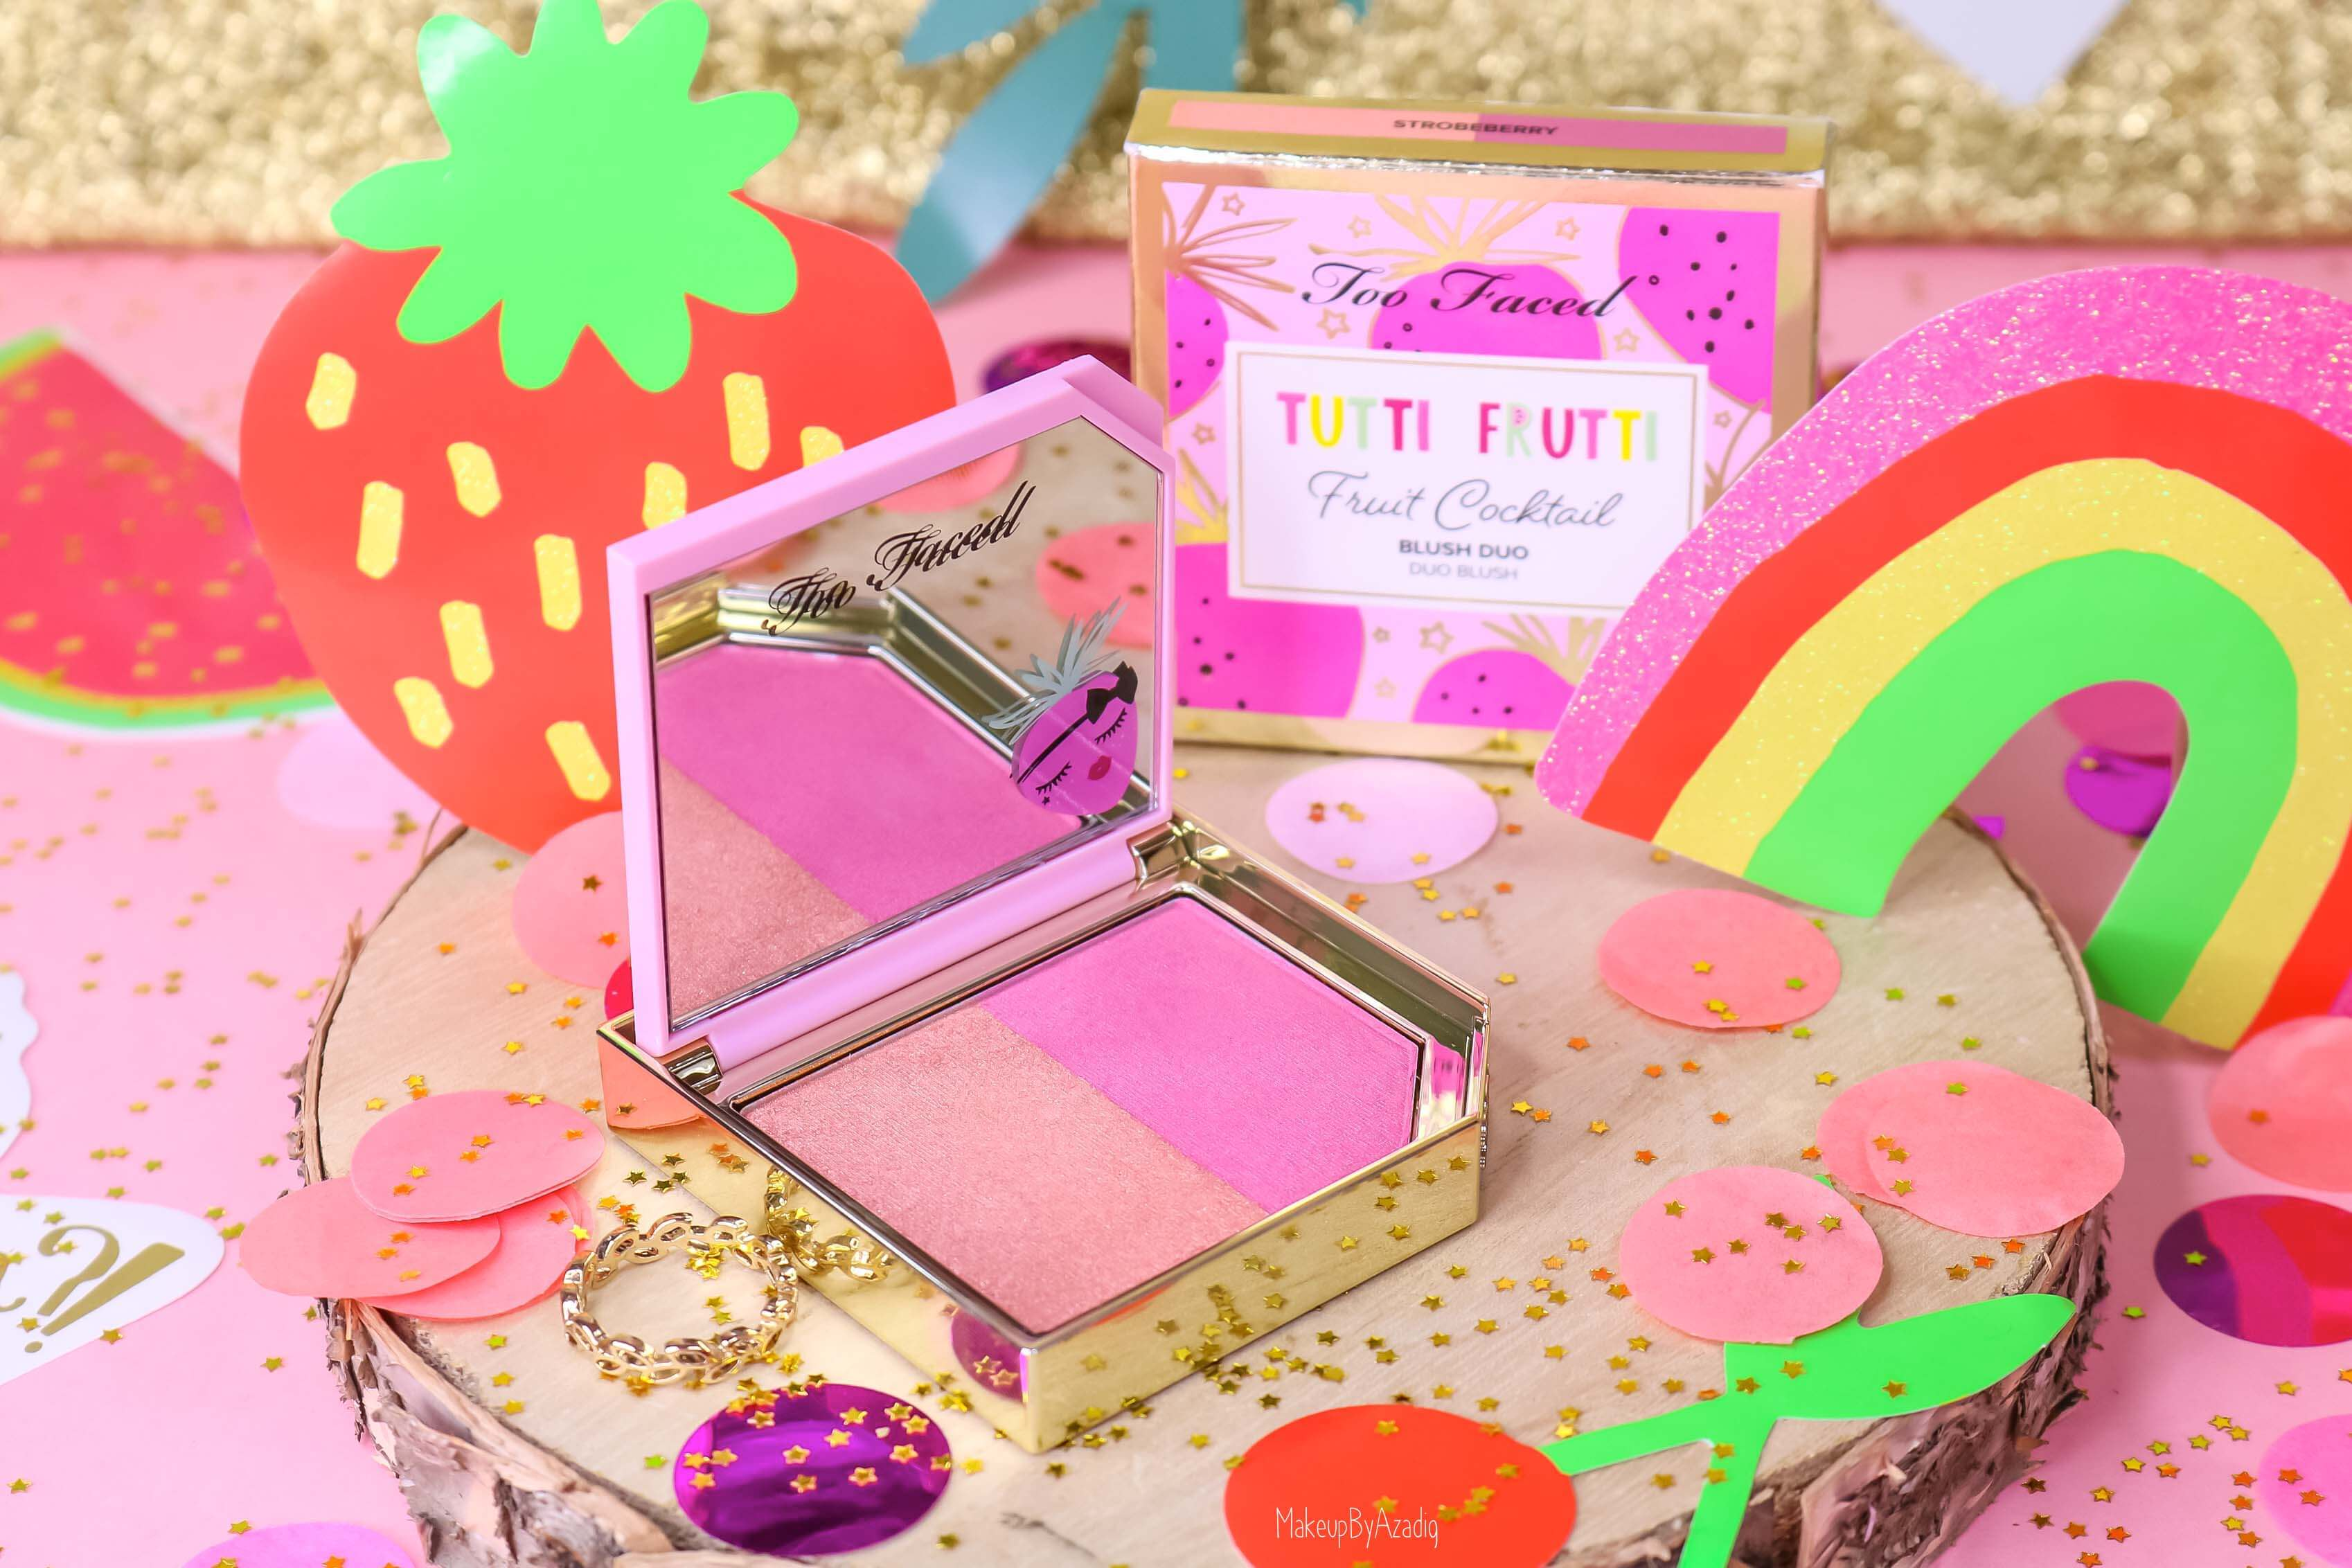 revue-collection-tutti-frutti-too-faced-blush-fruit-cocktail-strobeberry-sephora-france-makeupbyazadig-swatch-avis-prix-rose-miniature